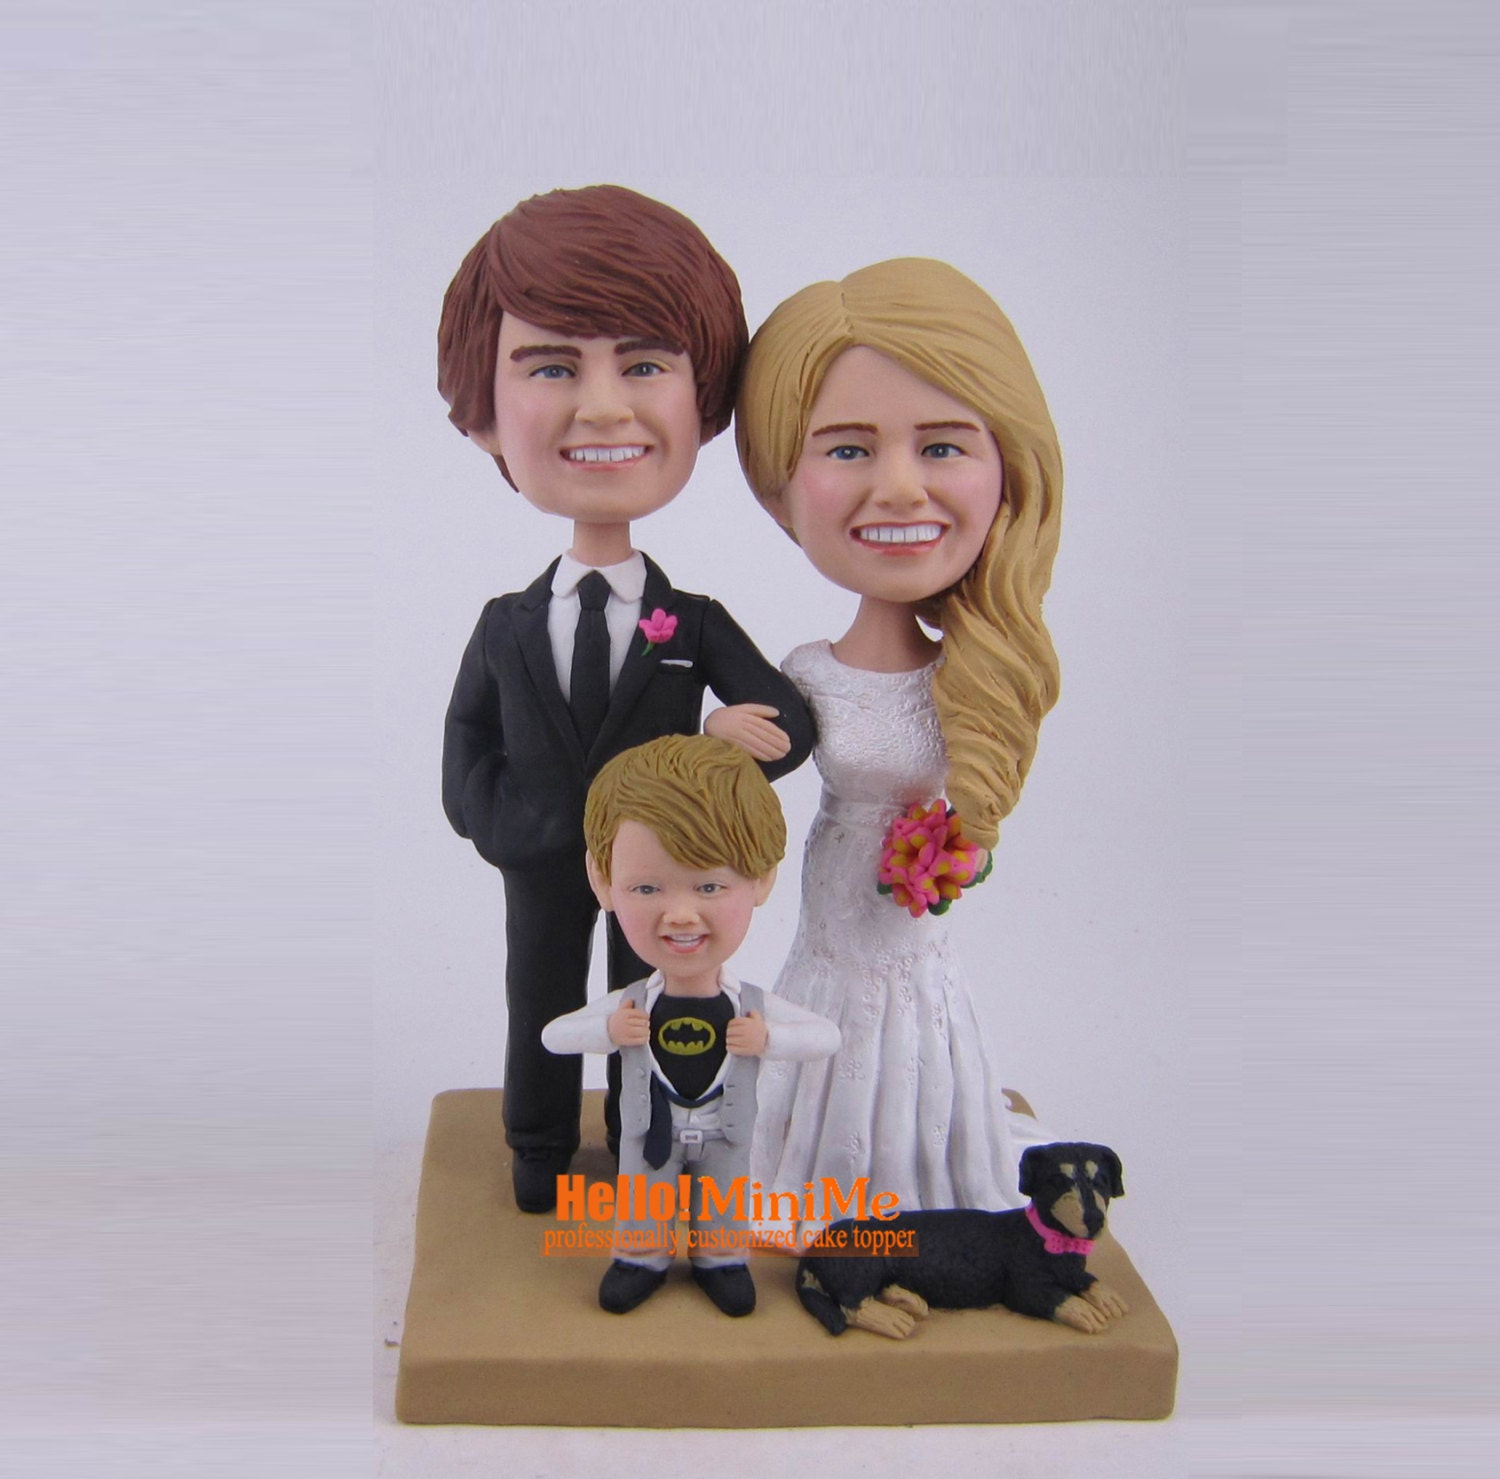 personalized bobblehead wedding cake toppers wedding cake topper bobblehead custom cake toppers bobble 6475